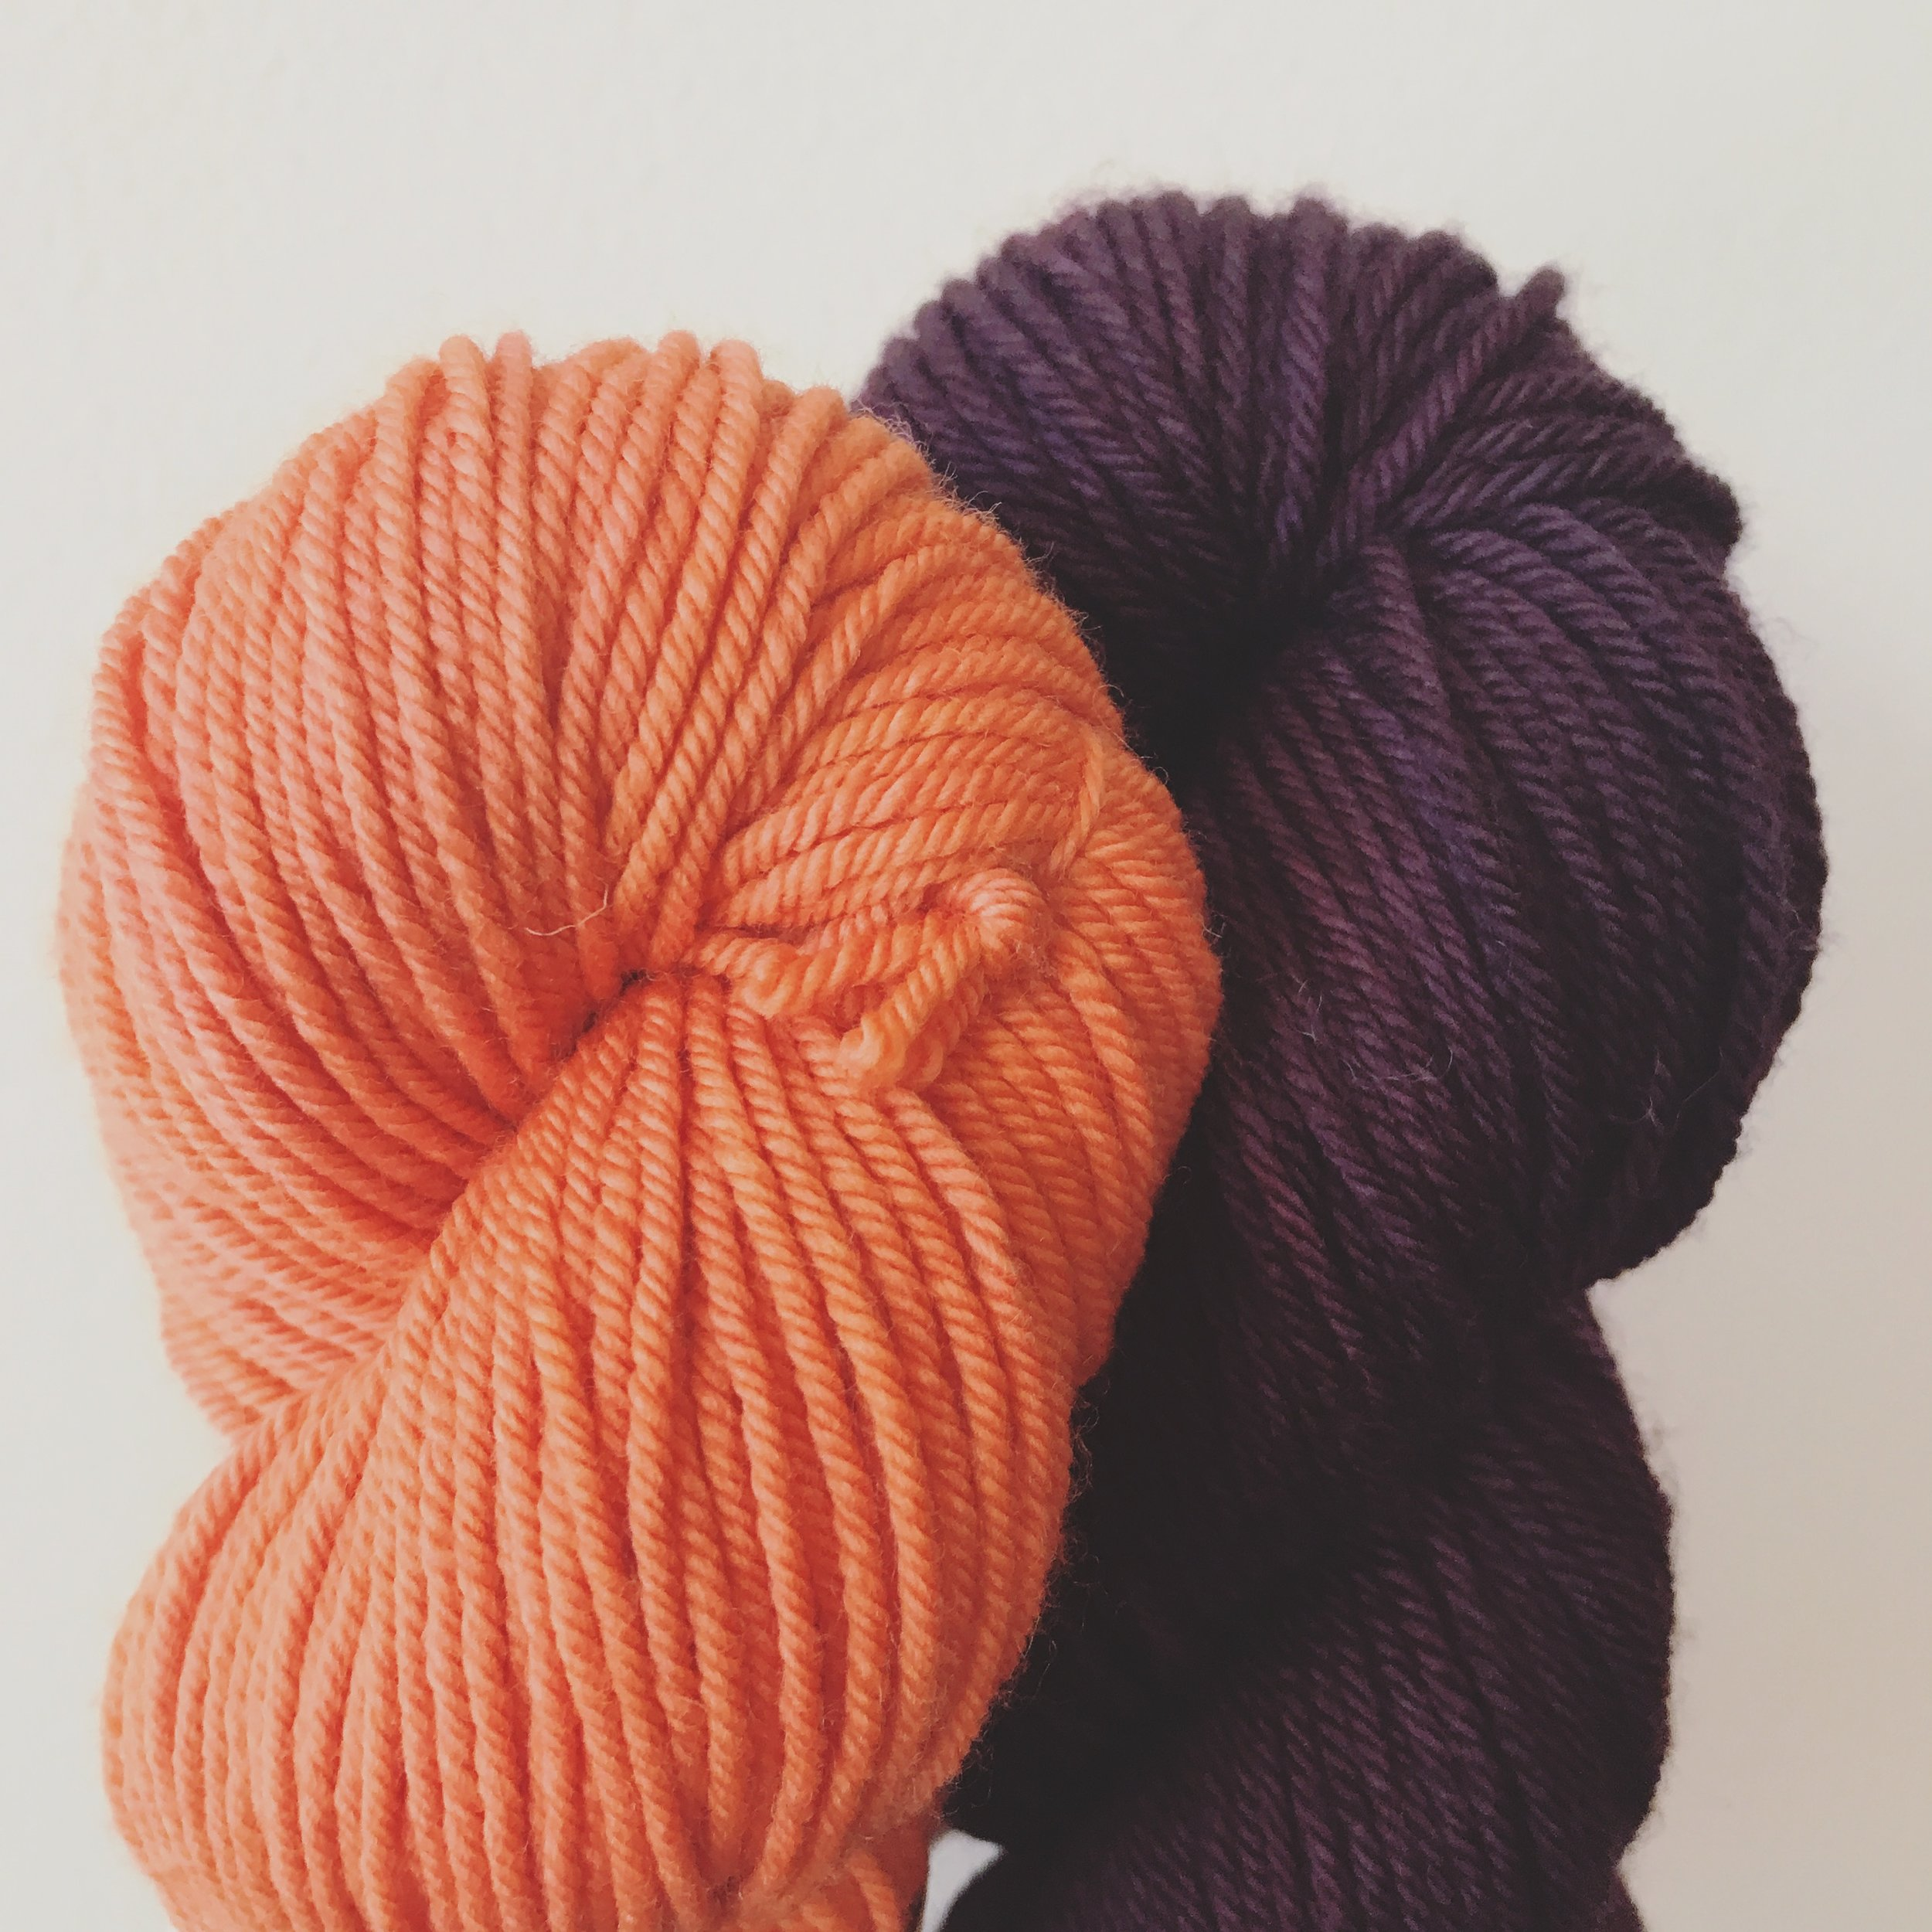 Mrs. Crosby, Steamer Trunk, Spicy Habanero Why Knot, Steady, Plum Image © Firefly Fiber Arts Studio